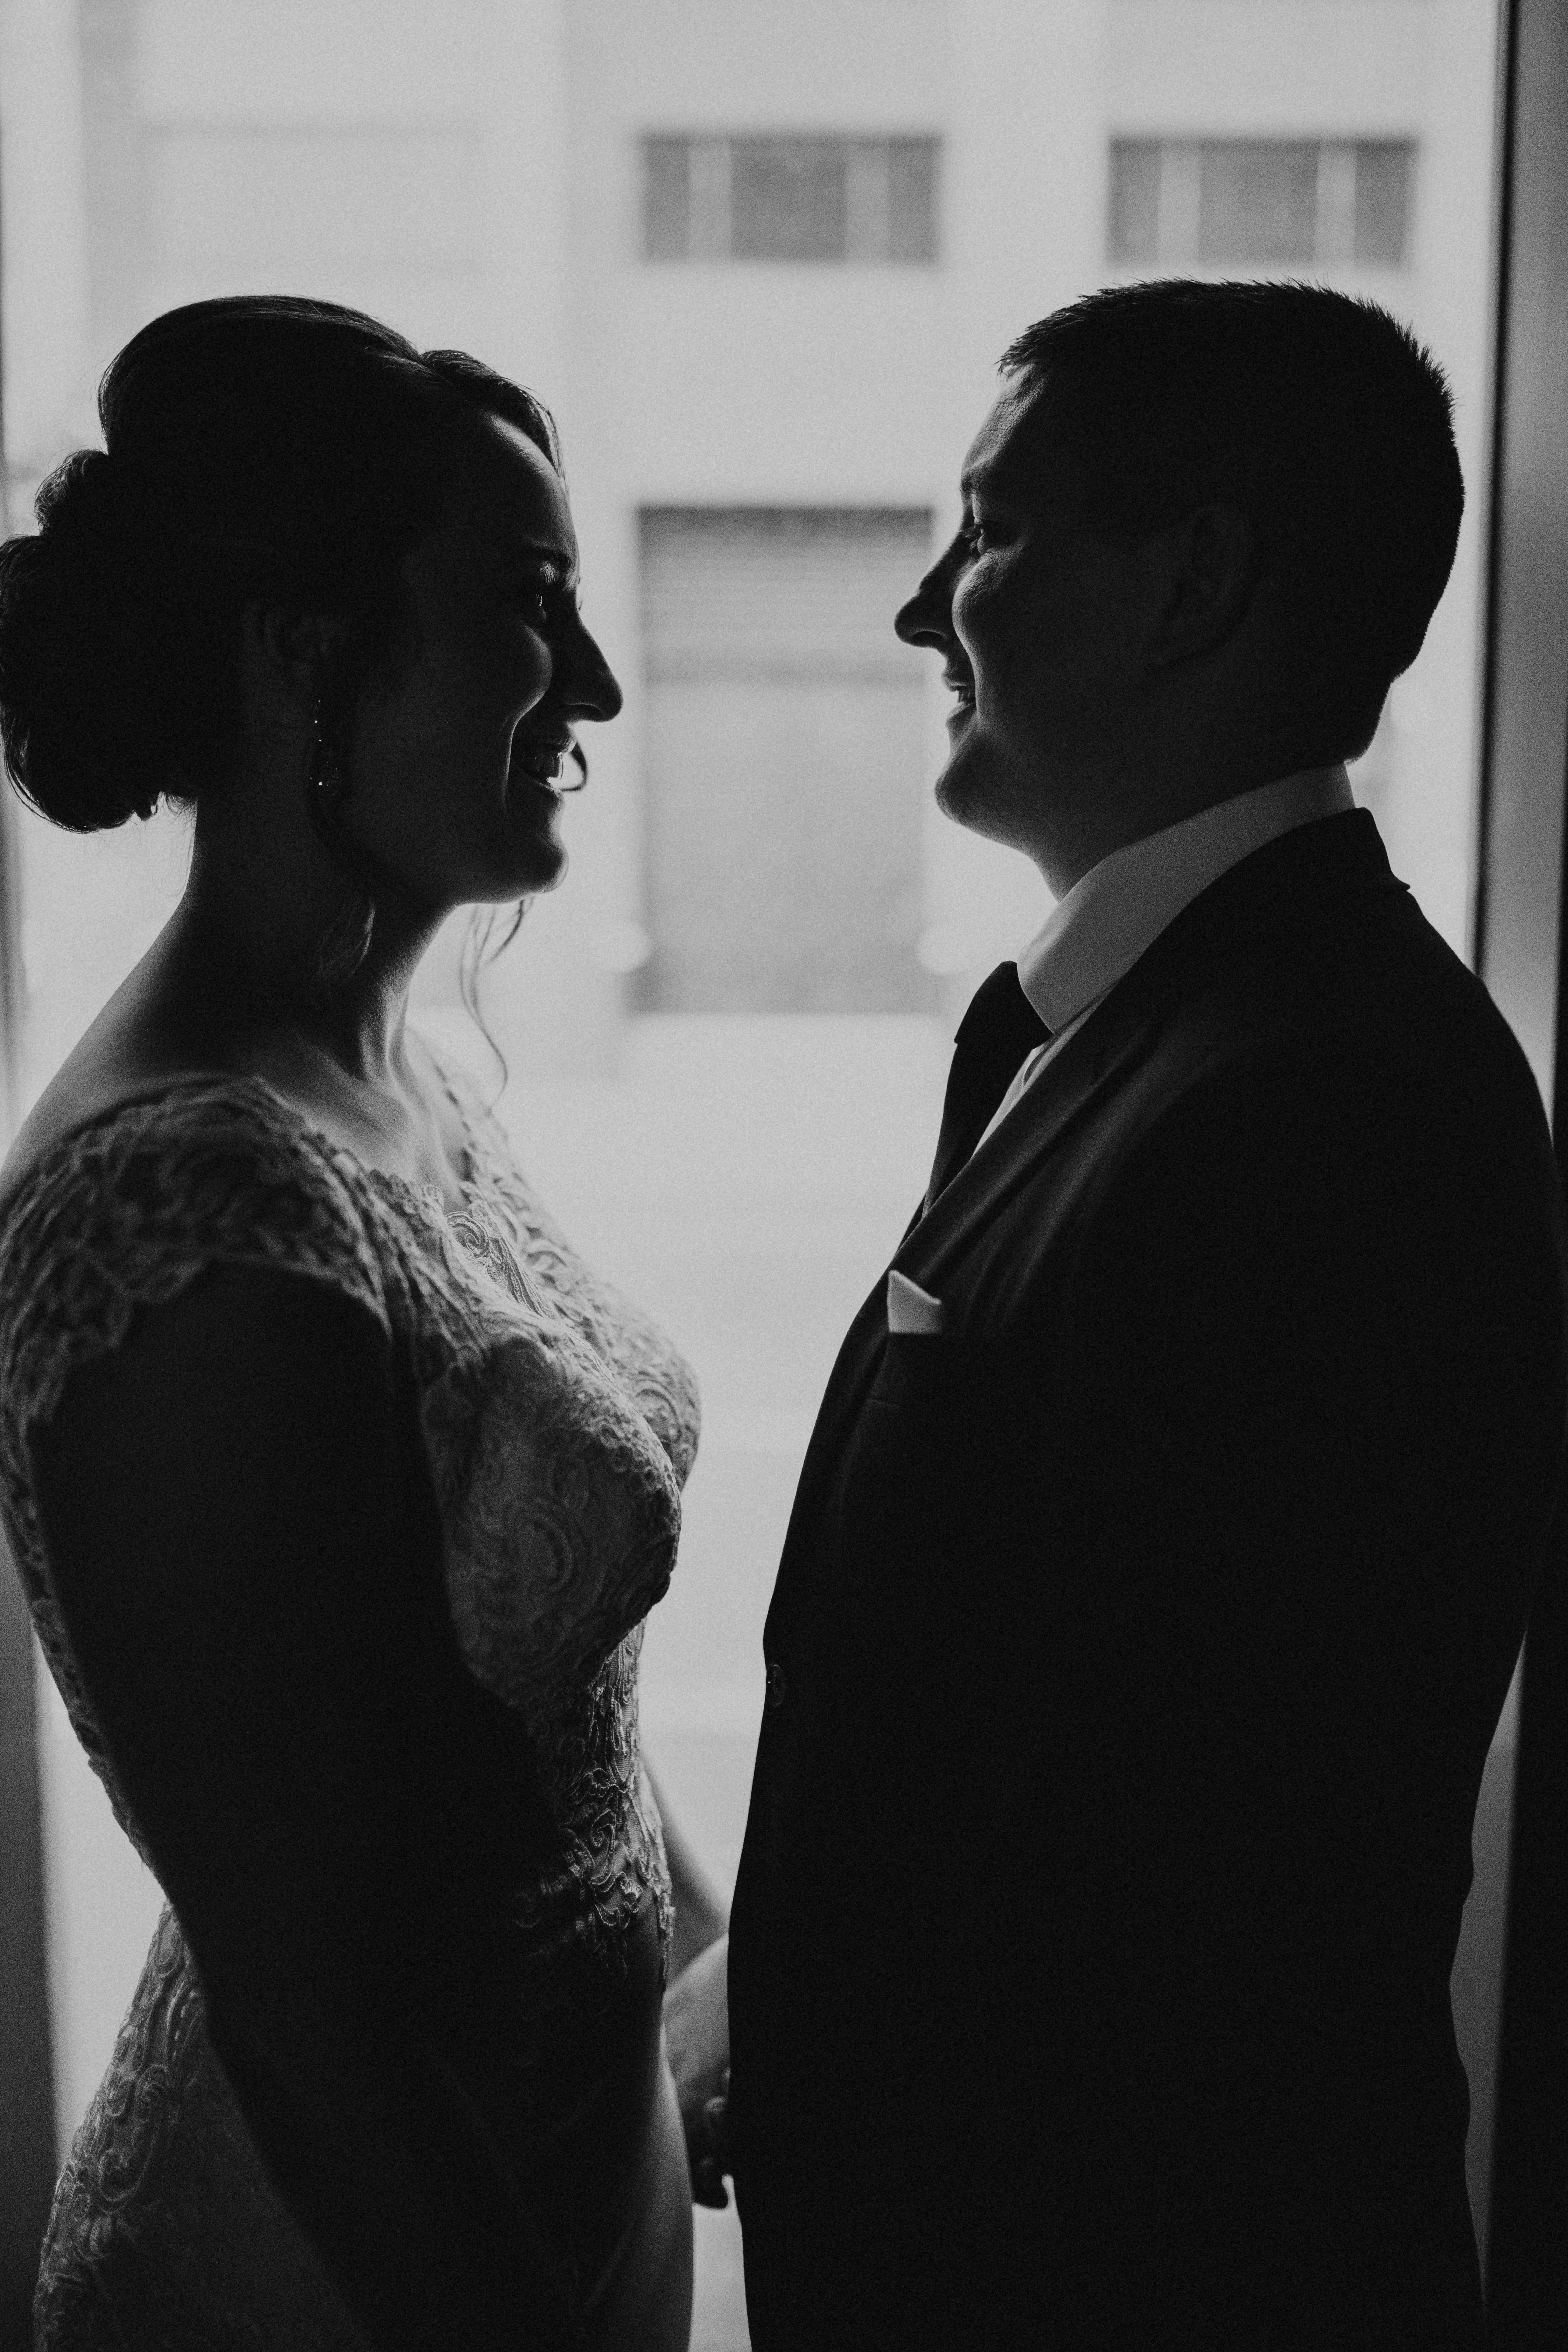 Moody Indoor Photography With Bride And Groom Wedding Day Portraits New Orleans Wedding Indoor Wedding Photos Wedding Photography Props Wedding Photo Pictures